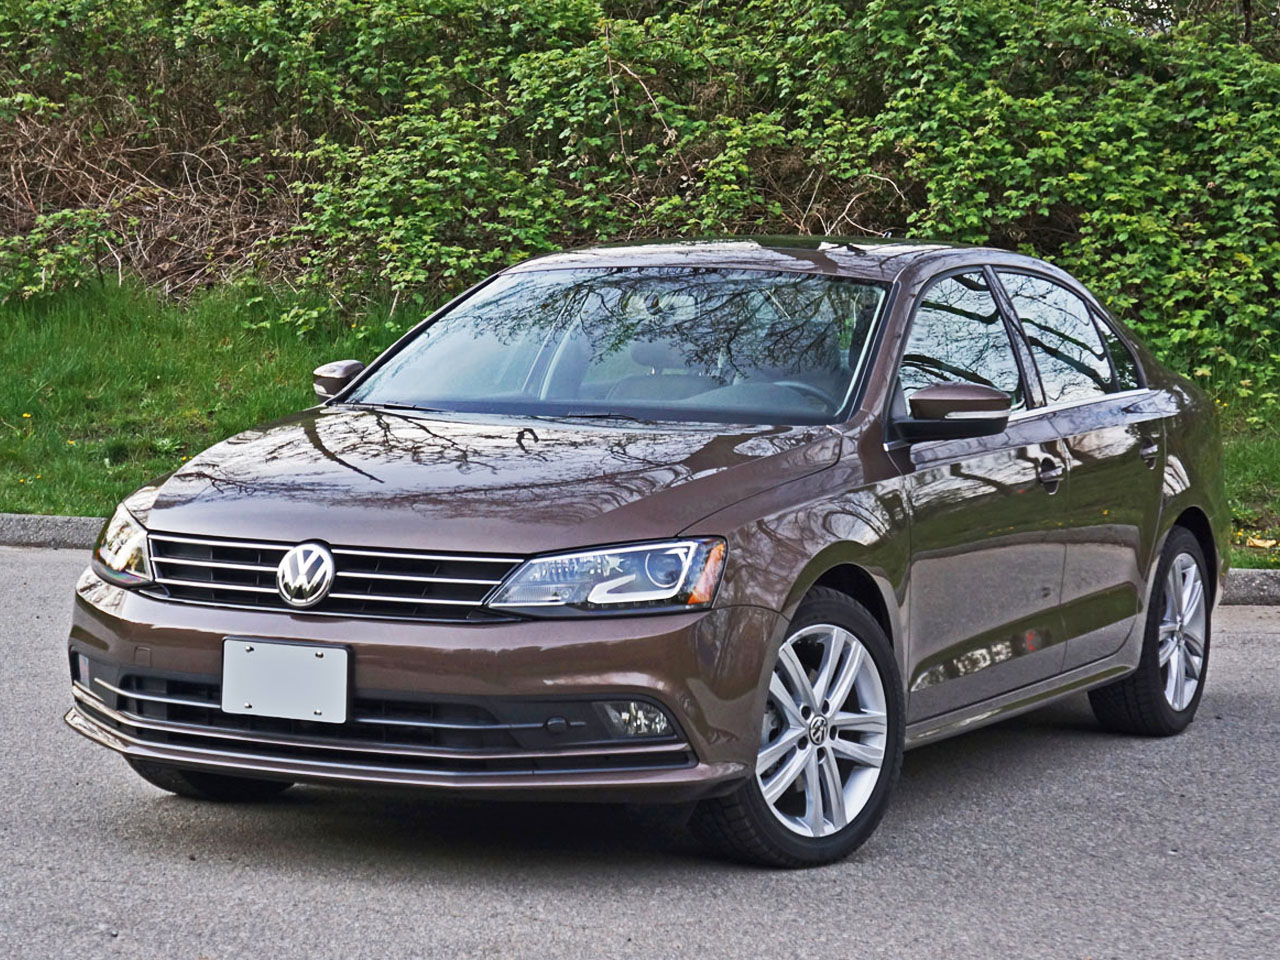 2015 volkswagen jetta tdi highline road test review carcostcanada. Black Bedroom Furniture Sets. Home Design Ideas